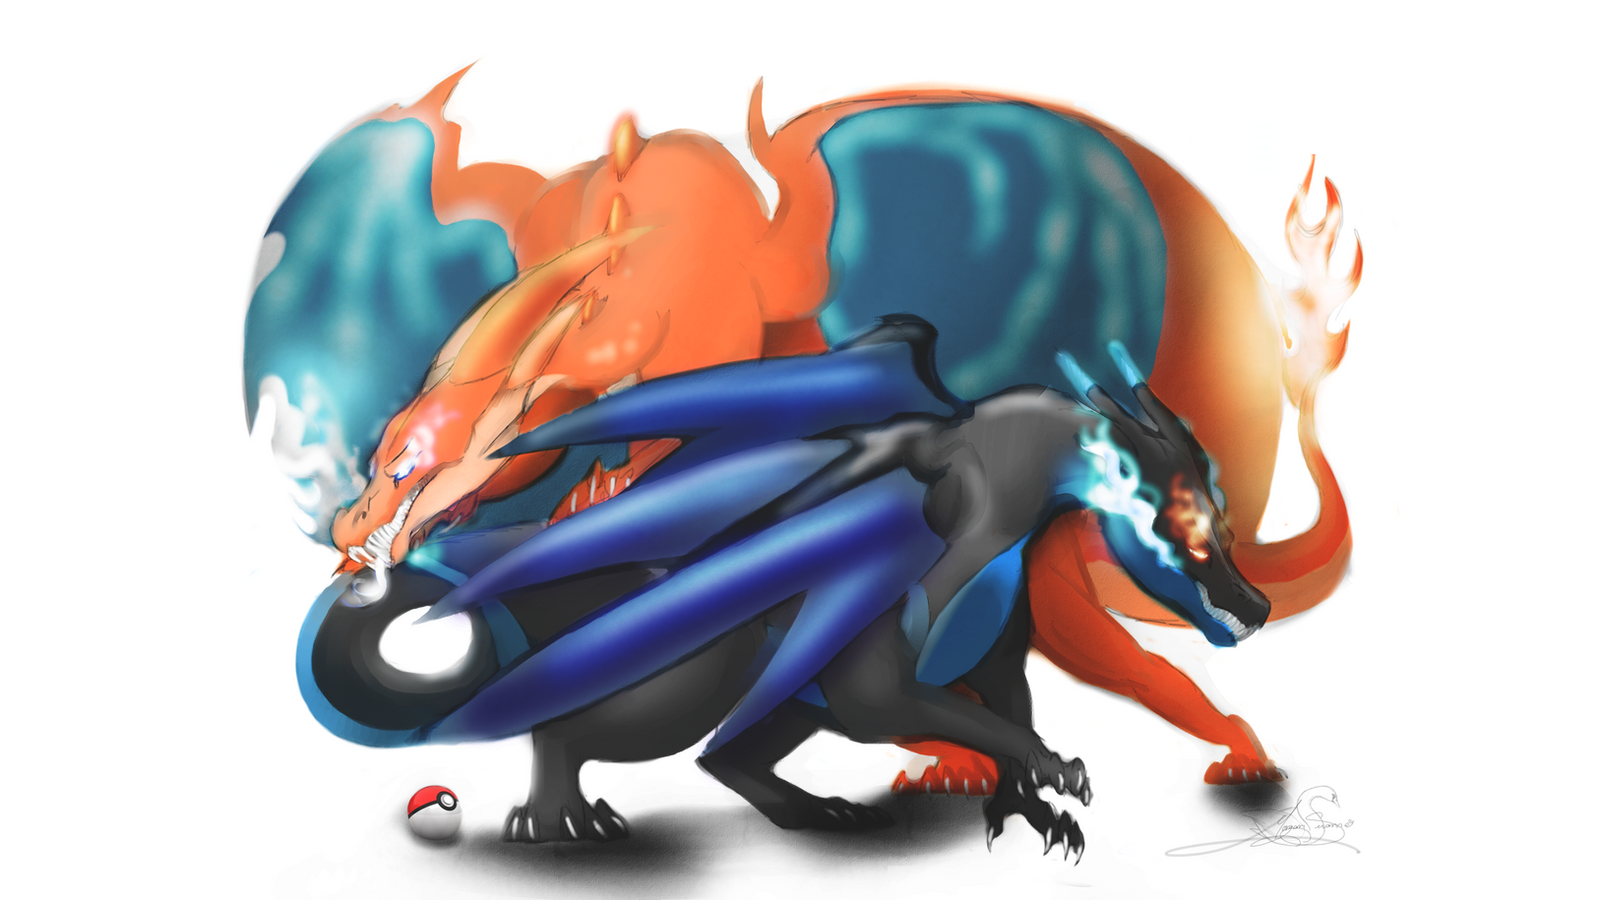 mega charizard x and y by zekromgoddess on deviantart